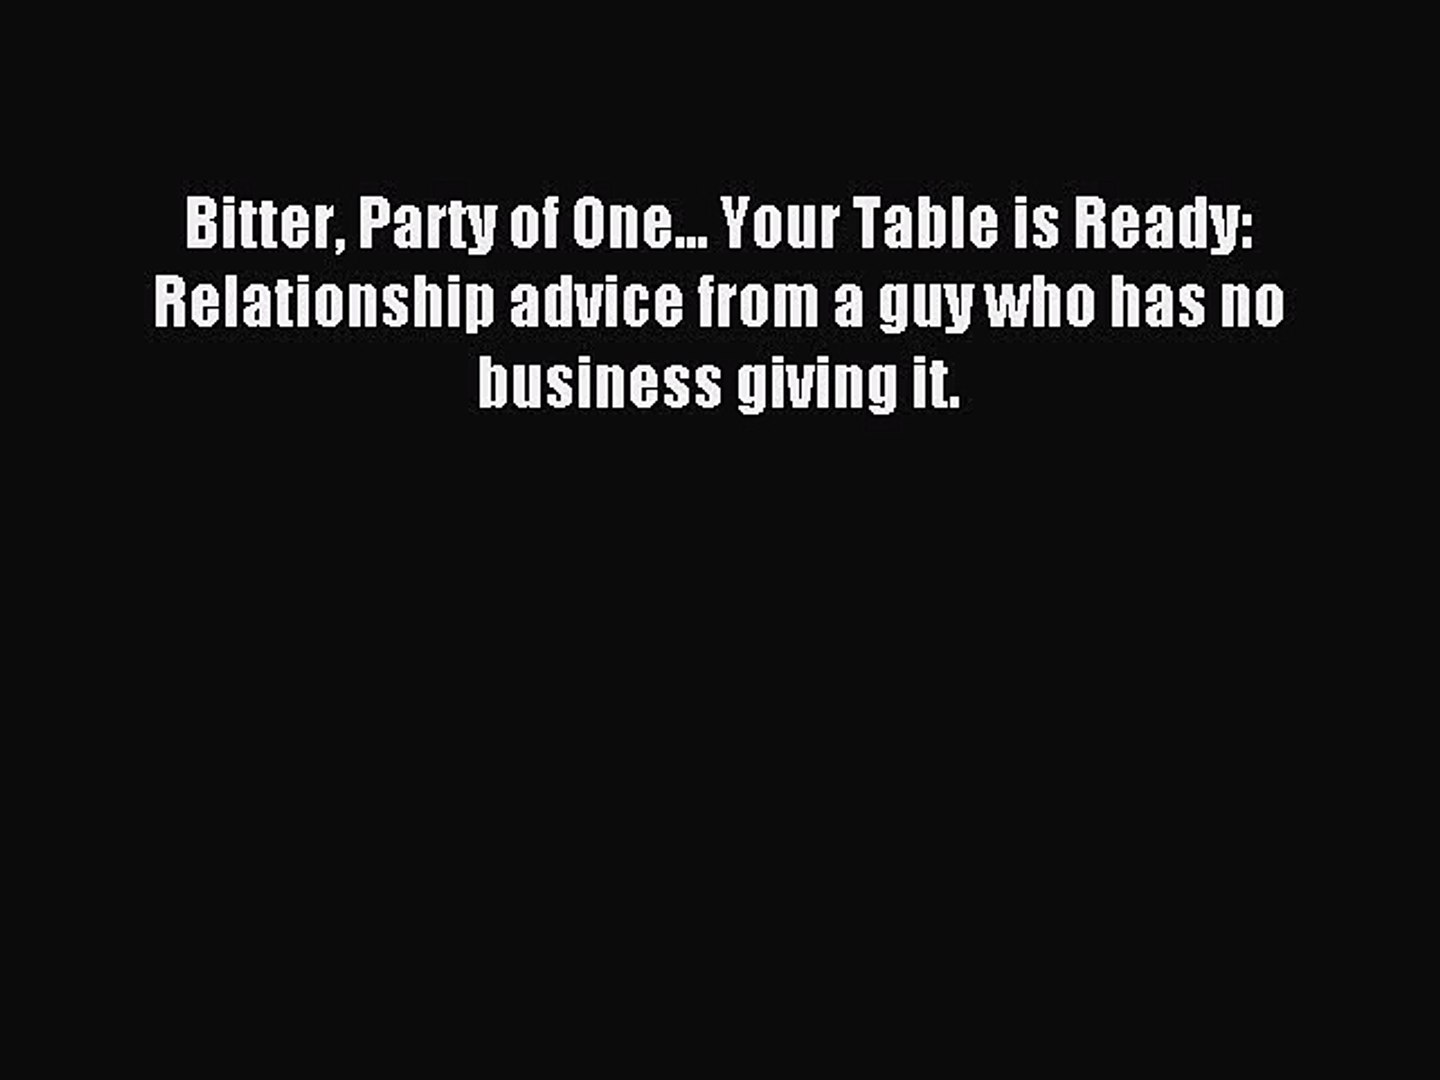 Download Bitter Party of One    Your Table is Ready: Relationship advice  from a guy who has